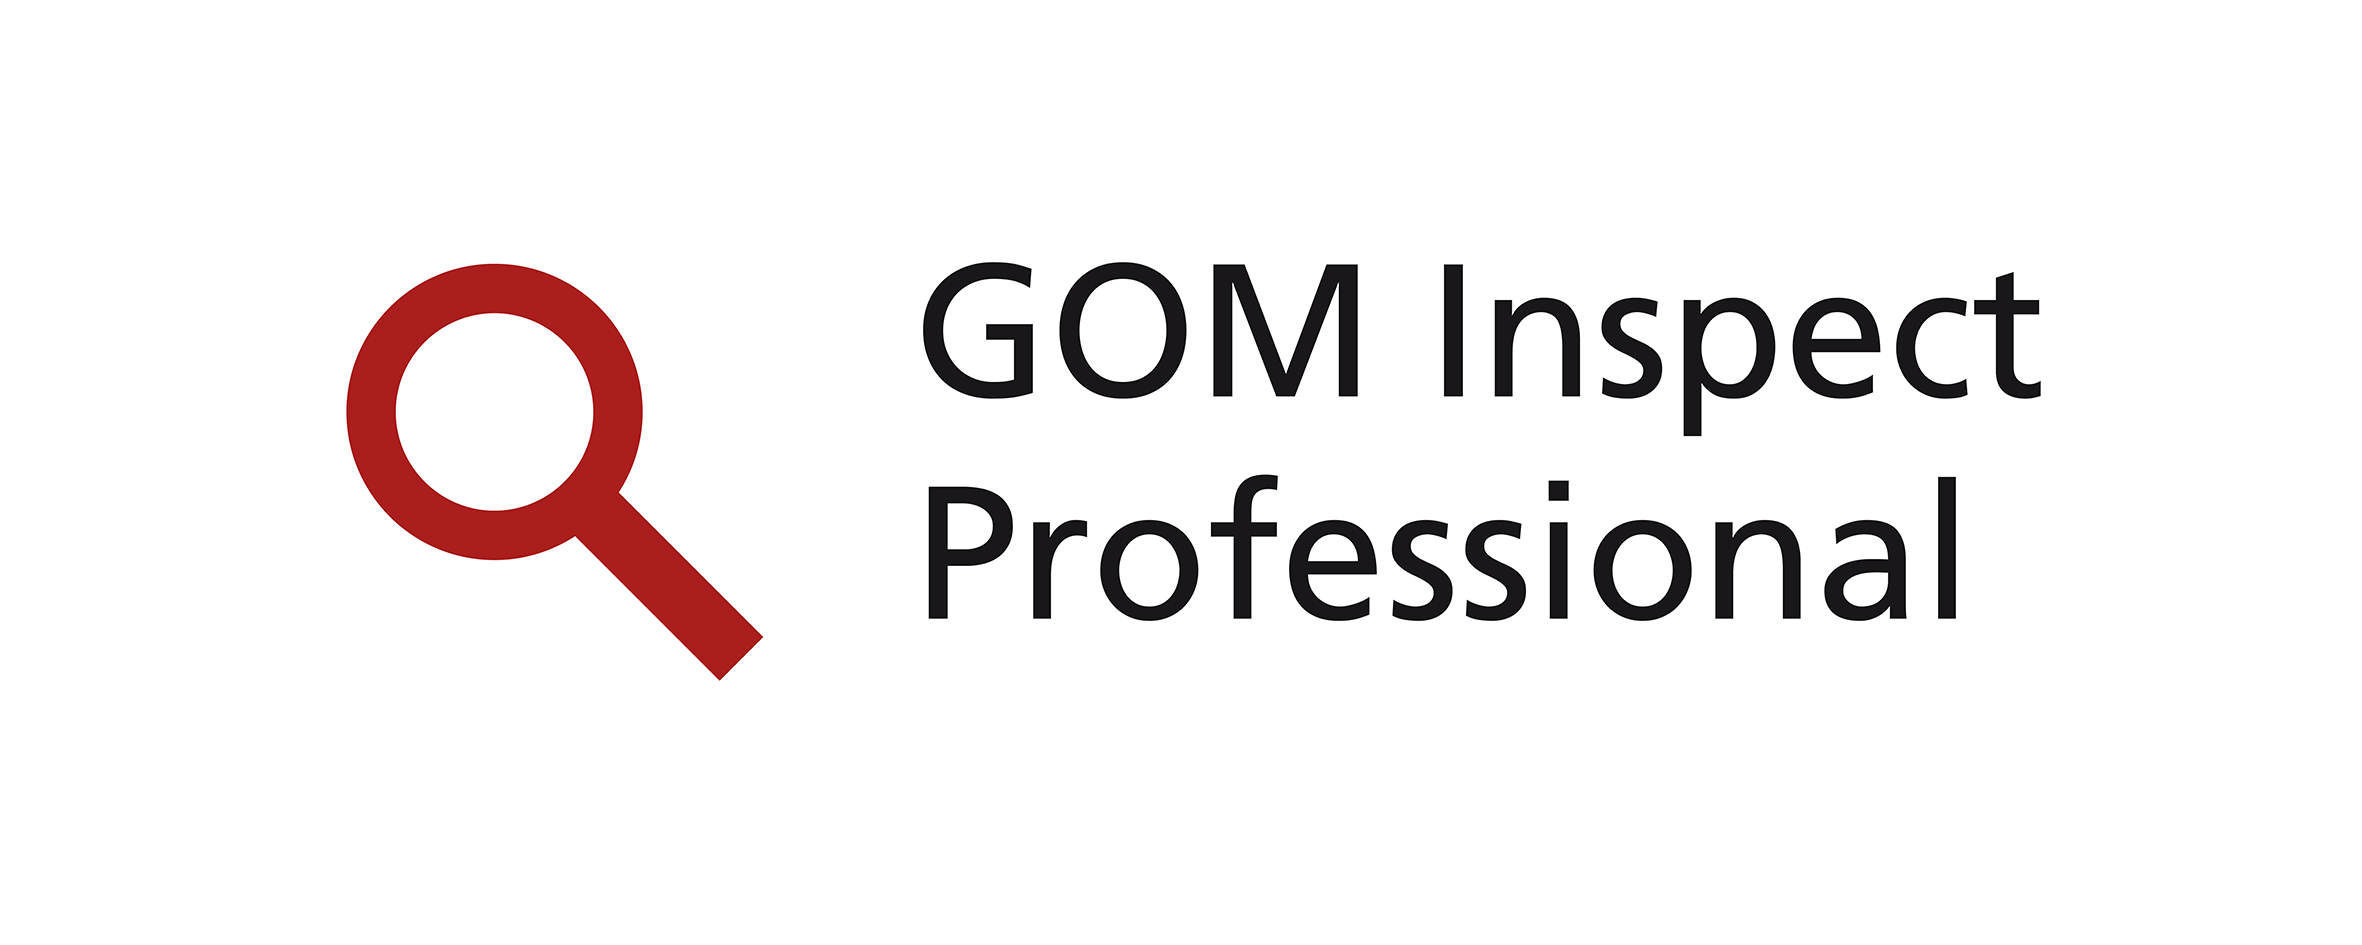 GOM Inspect Professional - Powerful 3D scanning and inspection software